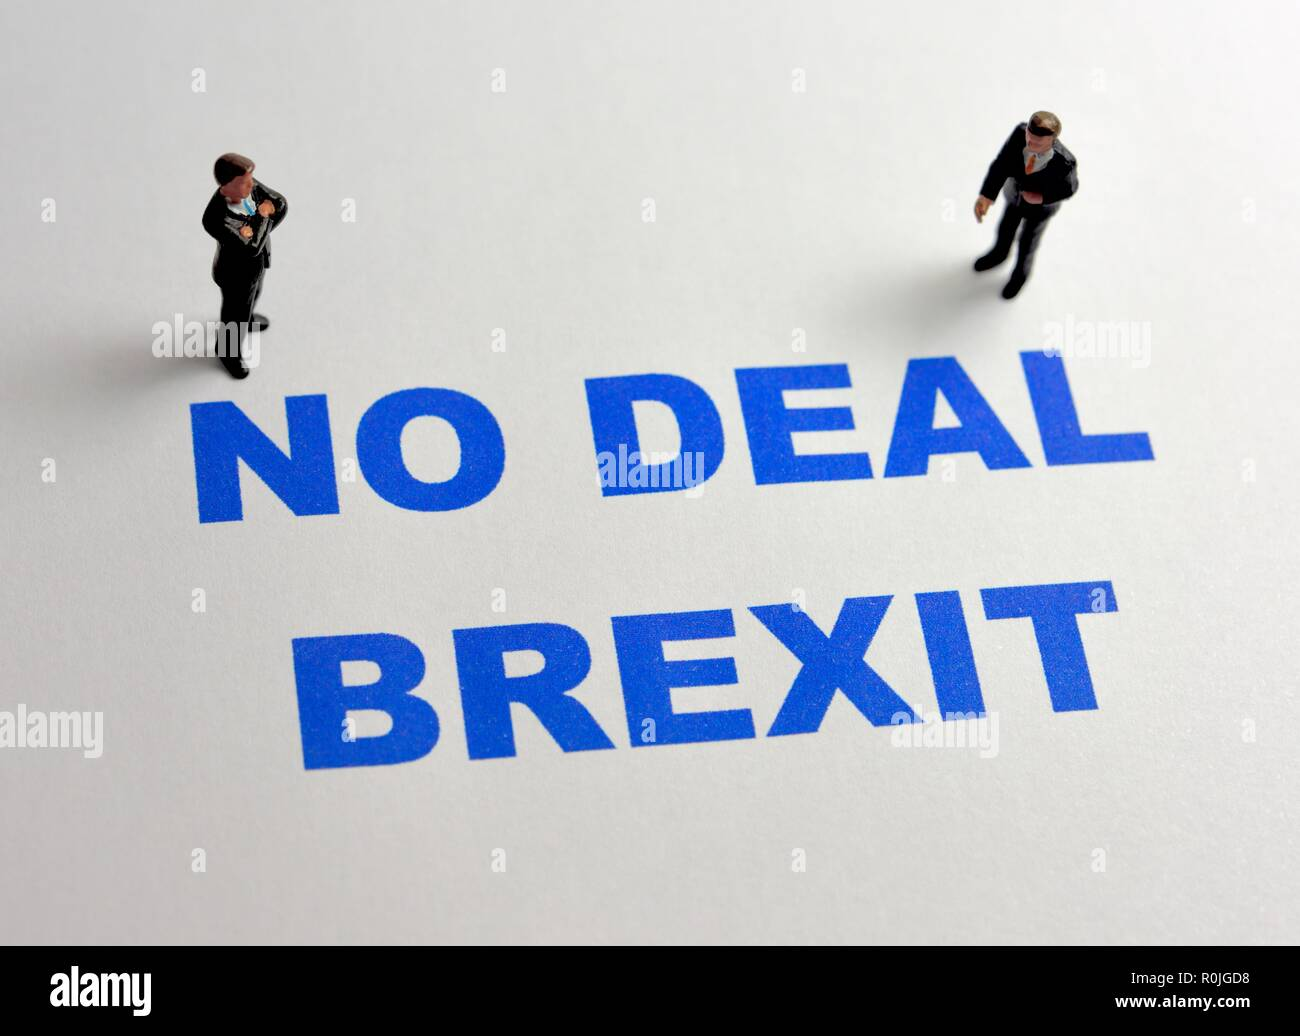 No Deal Brexit - Stock Image